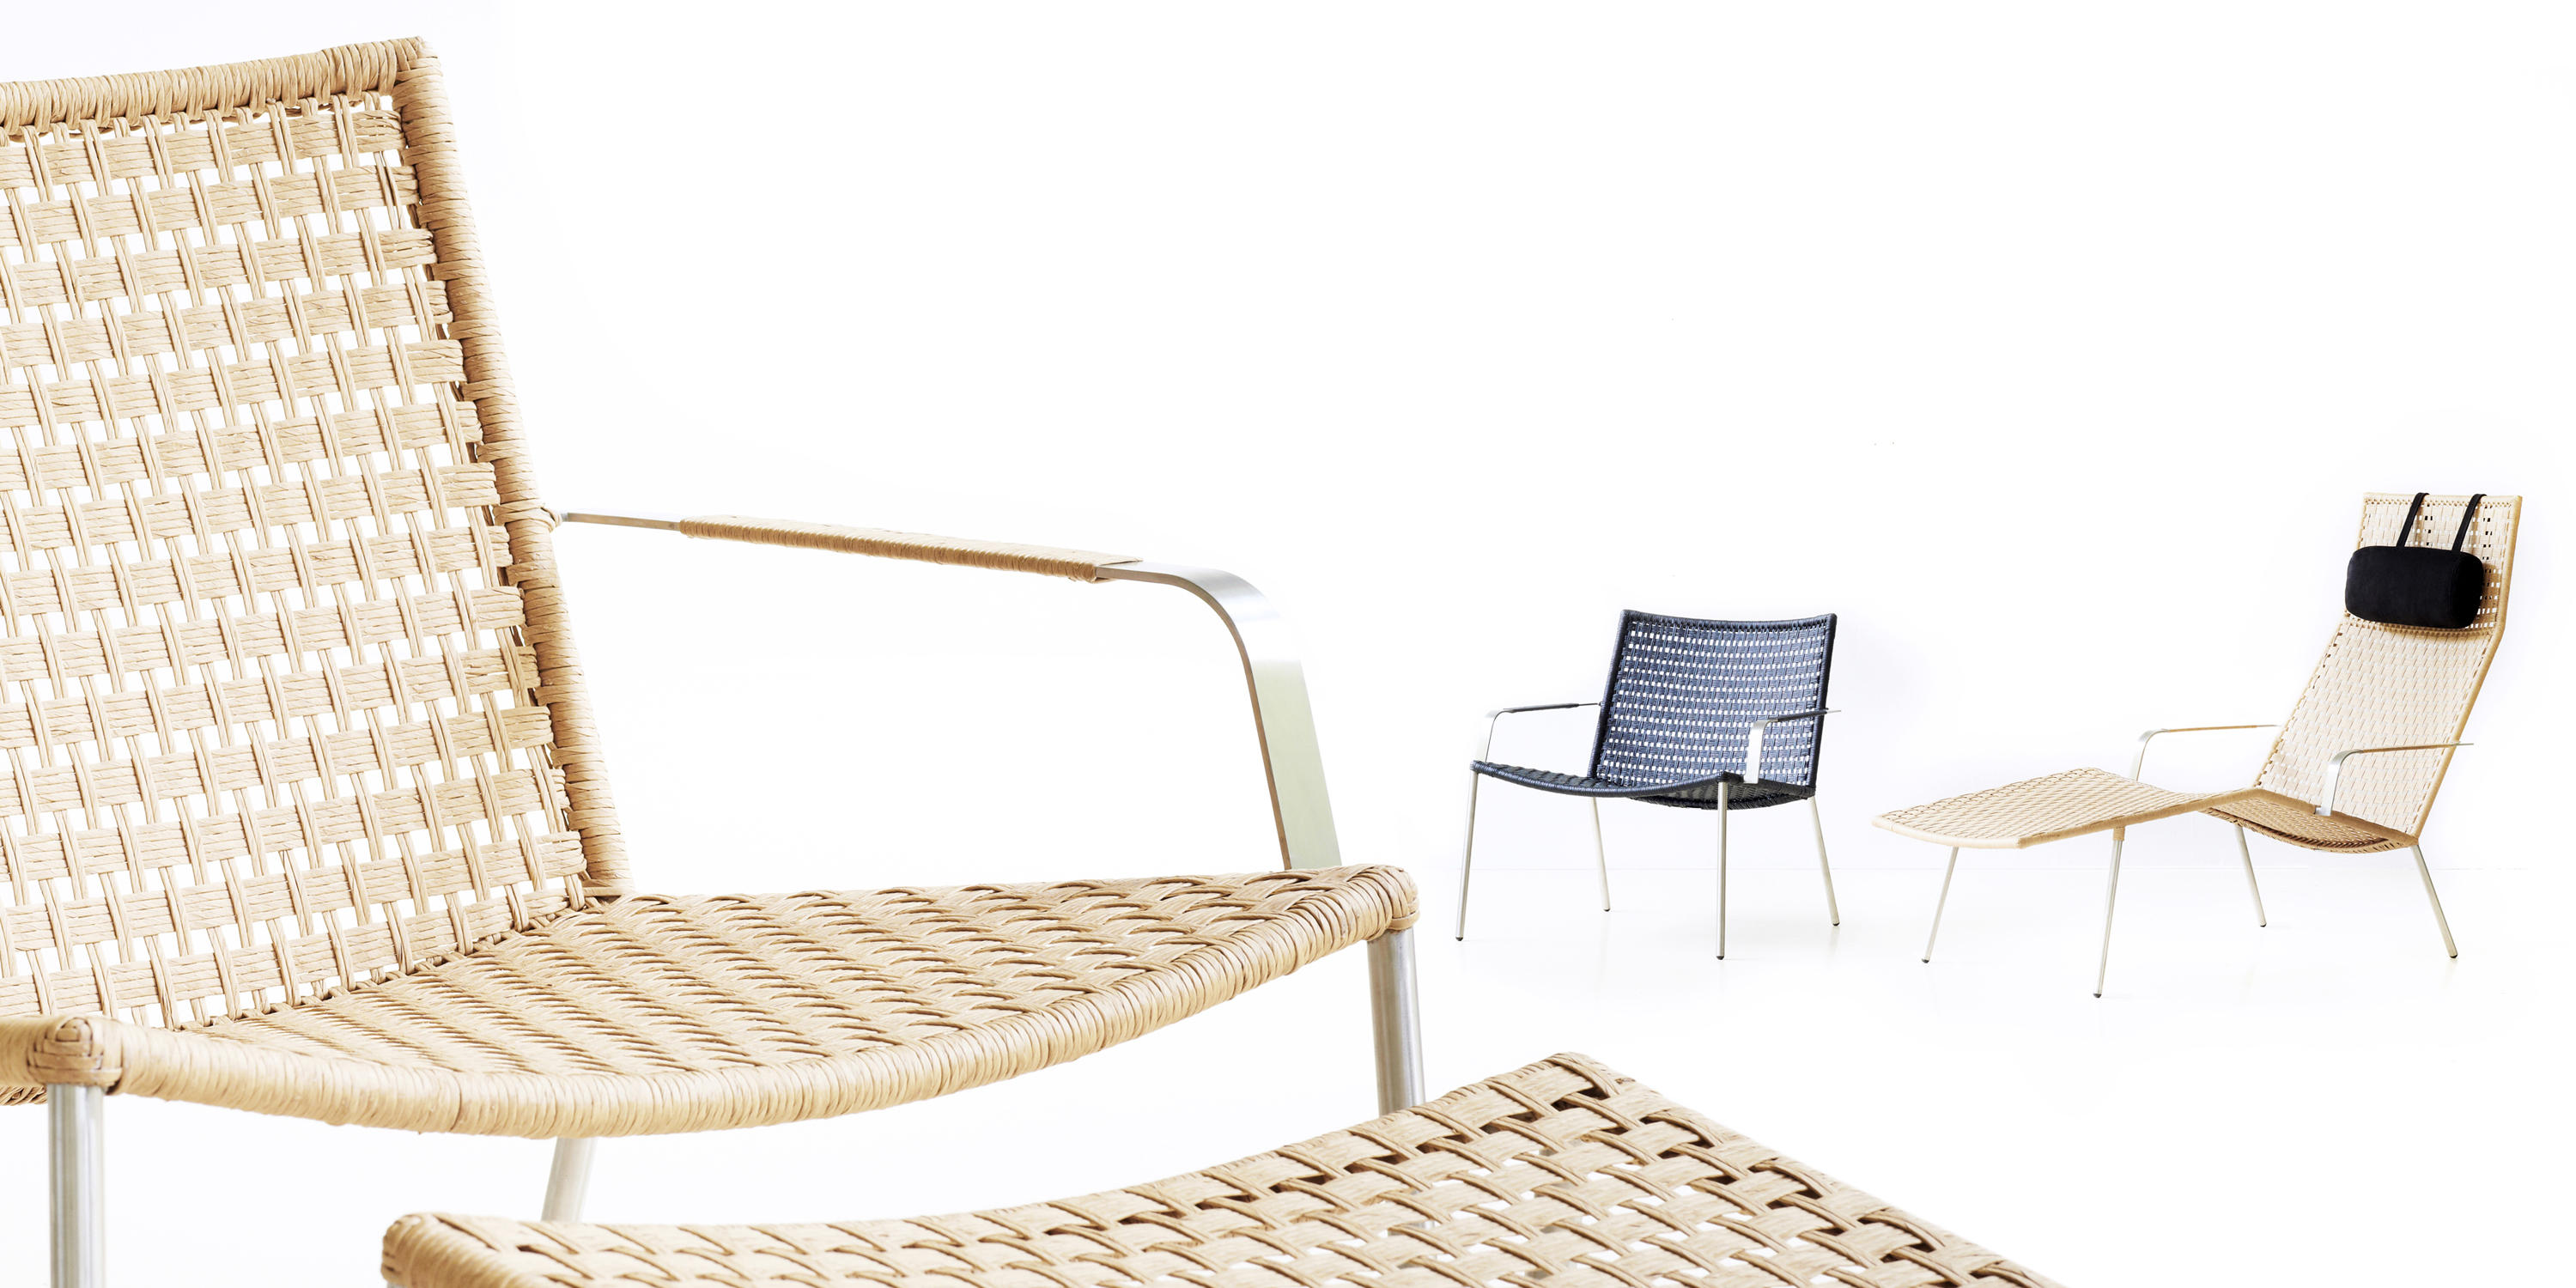 Miraculous Straw Footstool Designer Furniture Architonic Gamerscity Chair Design For Home Gamerscityorg